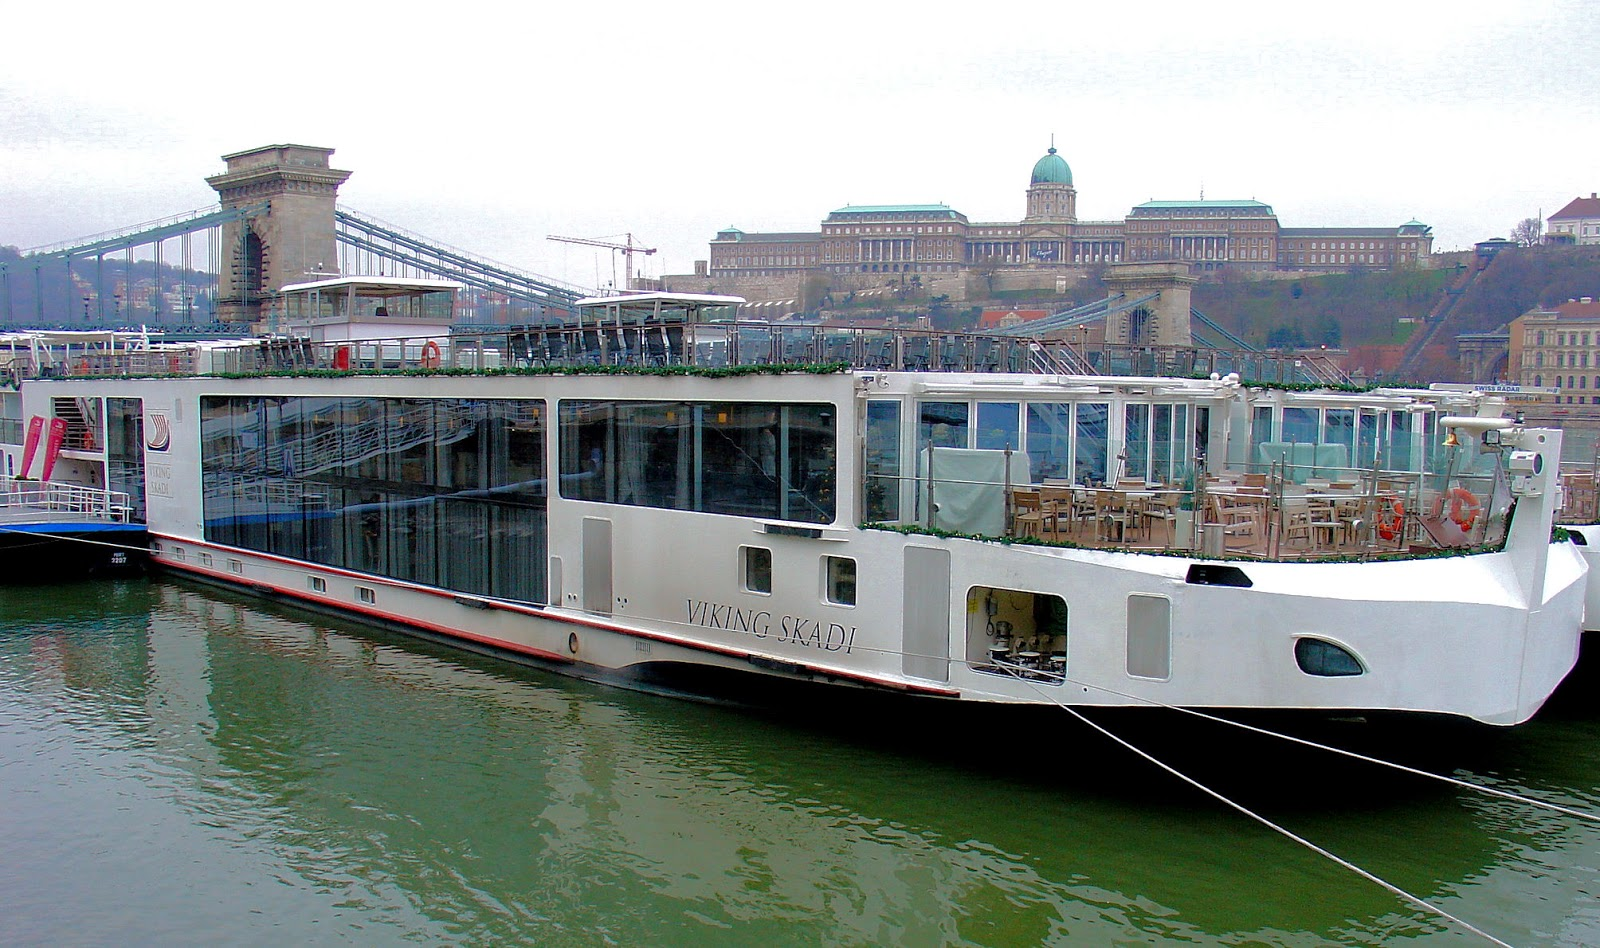 Viking River Cruises' 'Viking Skadi' docked in Budapest. Photo: EuroTravelogue™. Unauthorized use is prohibited.